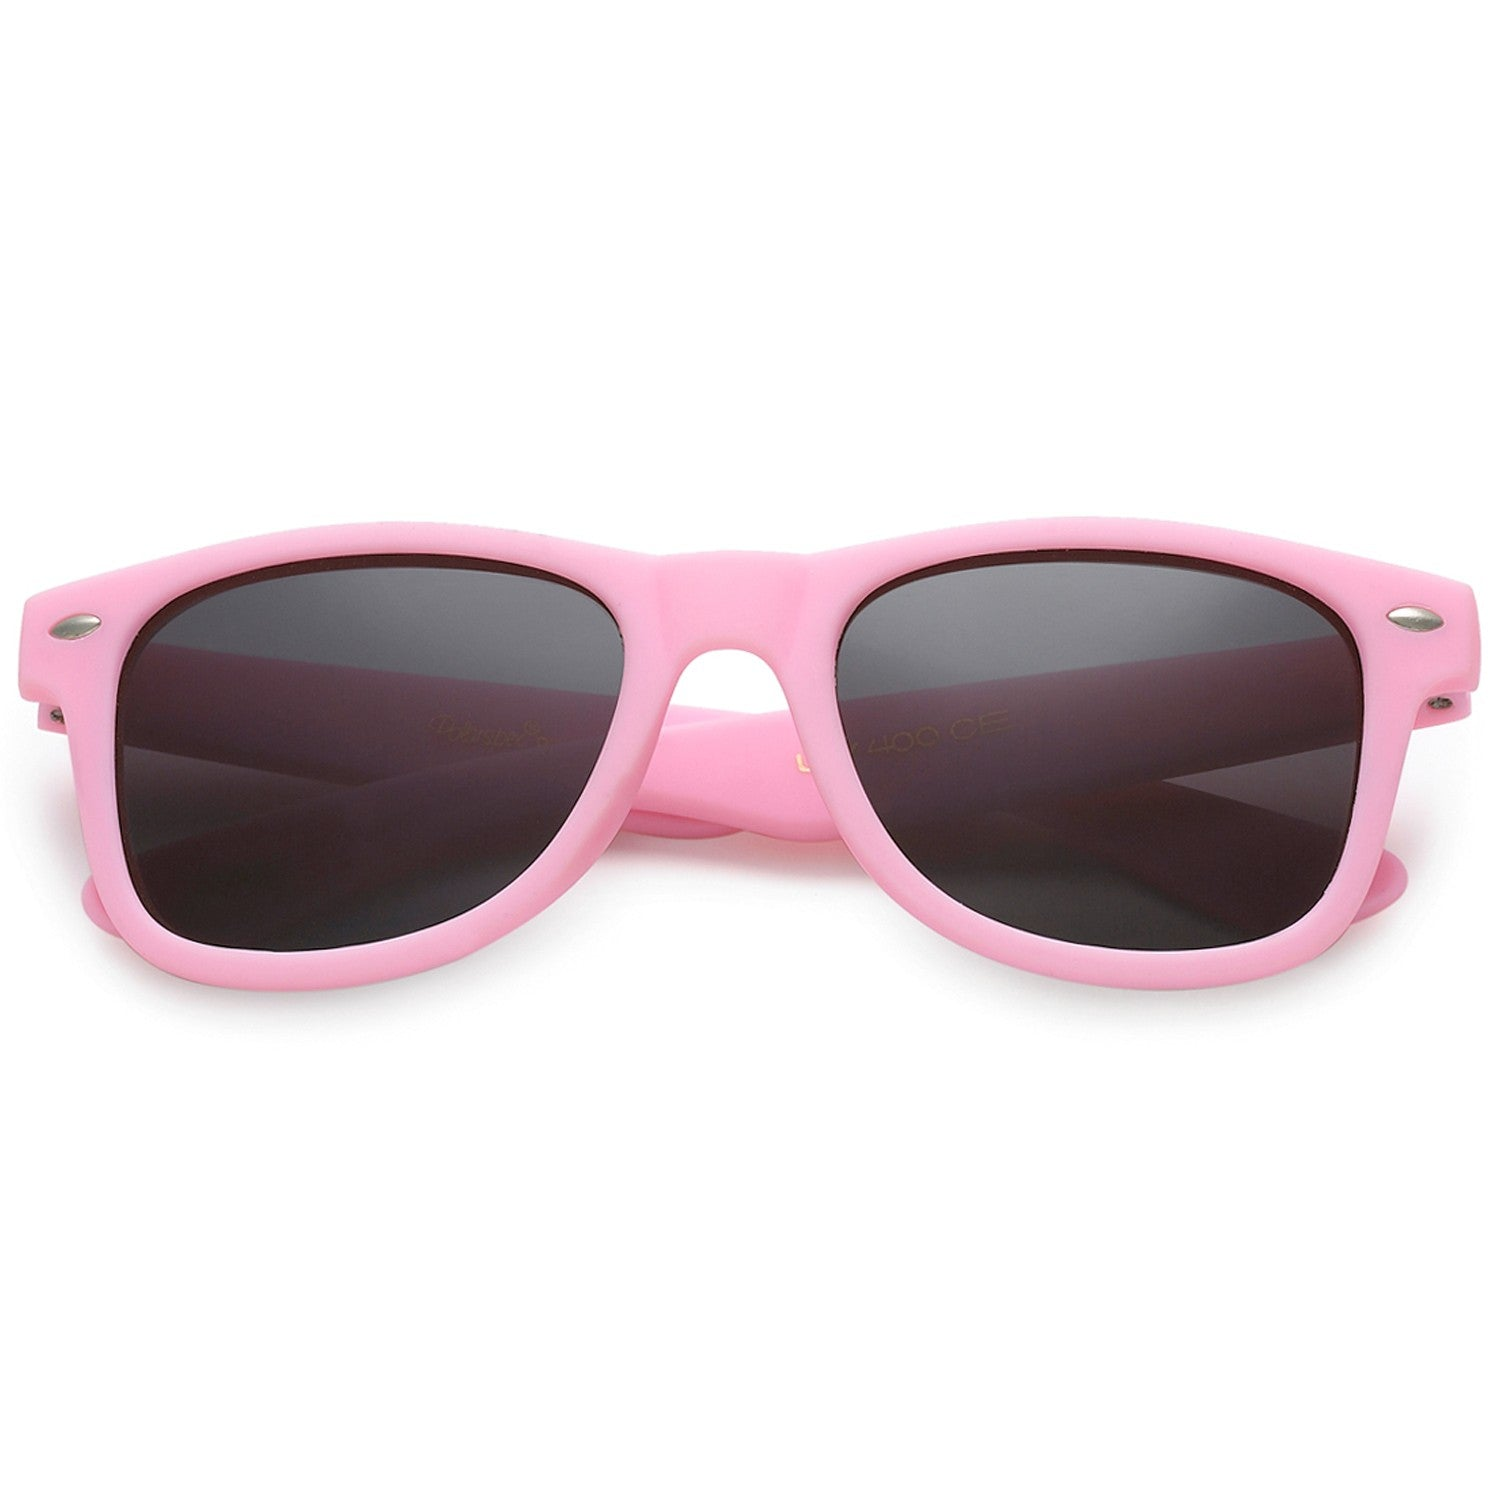 Polarspex Polarized 80's Retro Style Kids Sunglasses with Rubberized Princess Pink Frames and Polarized Smoke Lenses for Boys and Girls